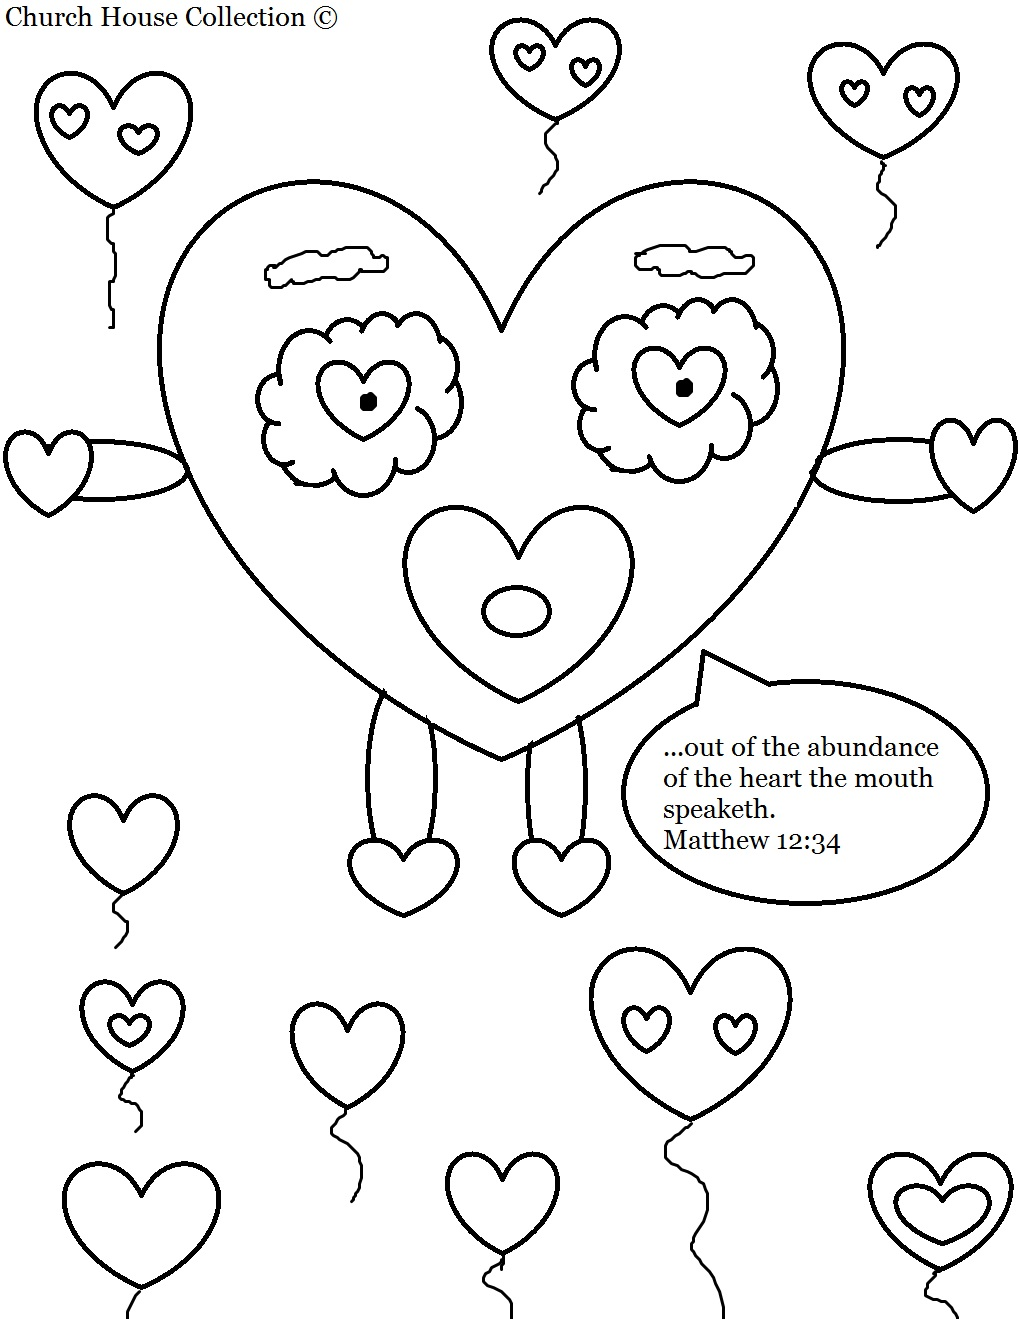 preschool sunday school coloring pages - Bible-Based Coloring Pages for Kids • KidExplorers